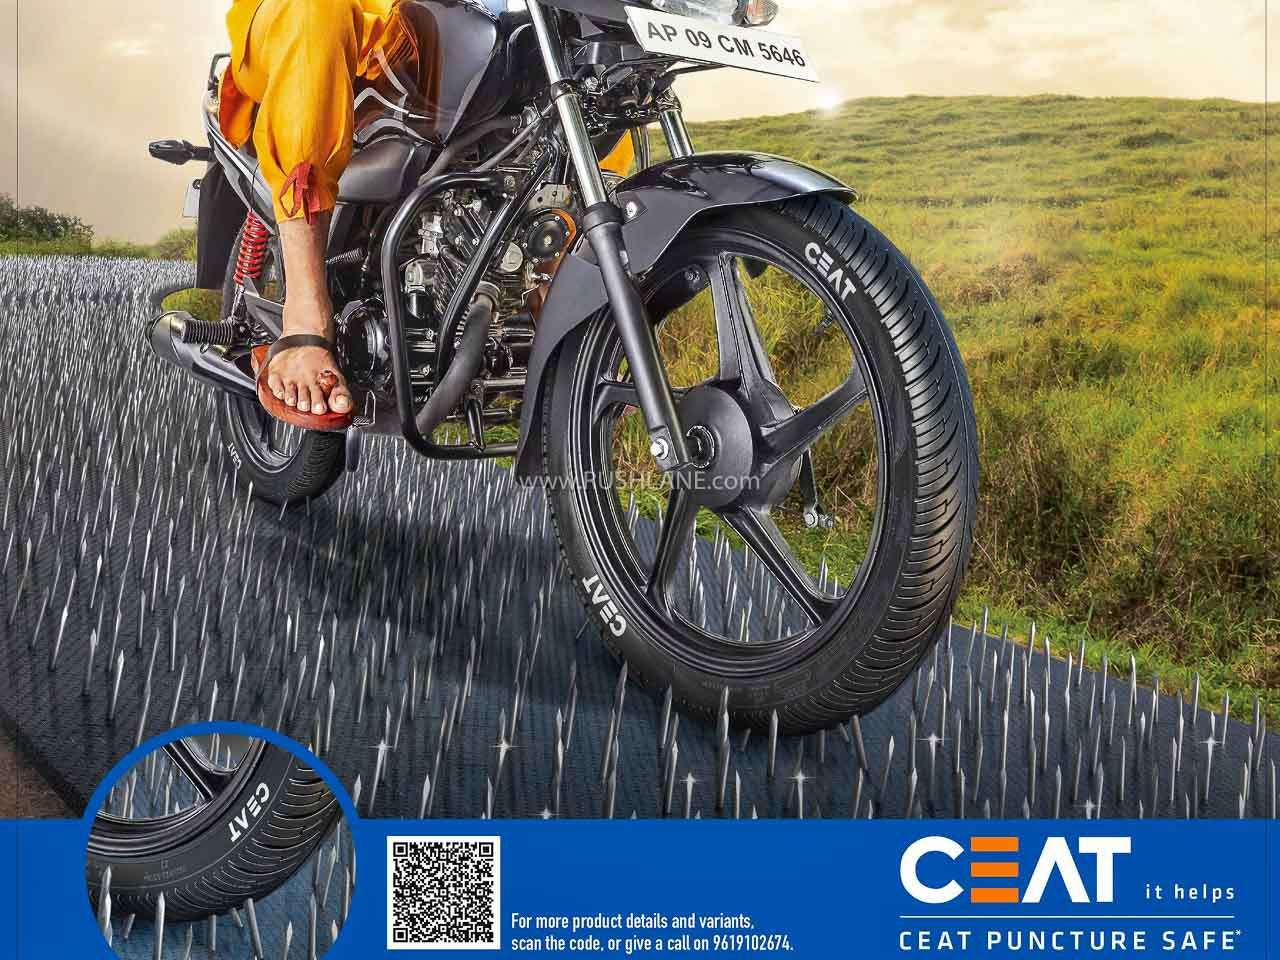 CEAT Puncture Proof Tyres Highlighted In New TVC With Keelwale Baba - RushLane